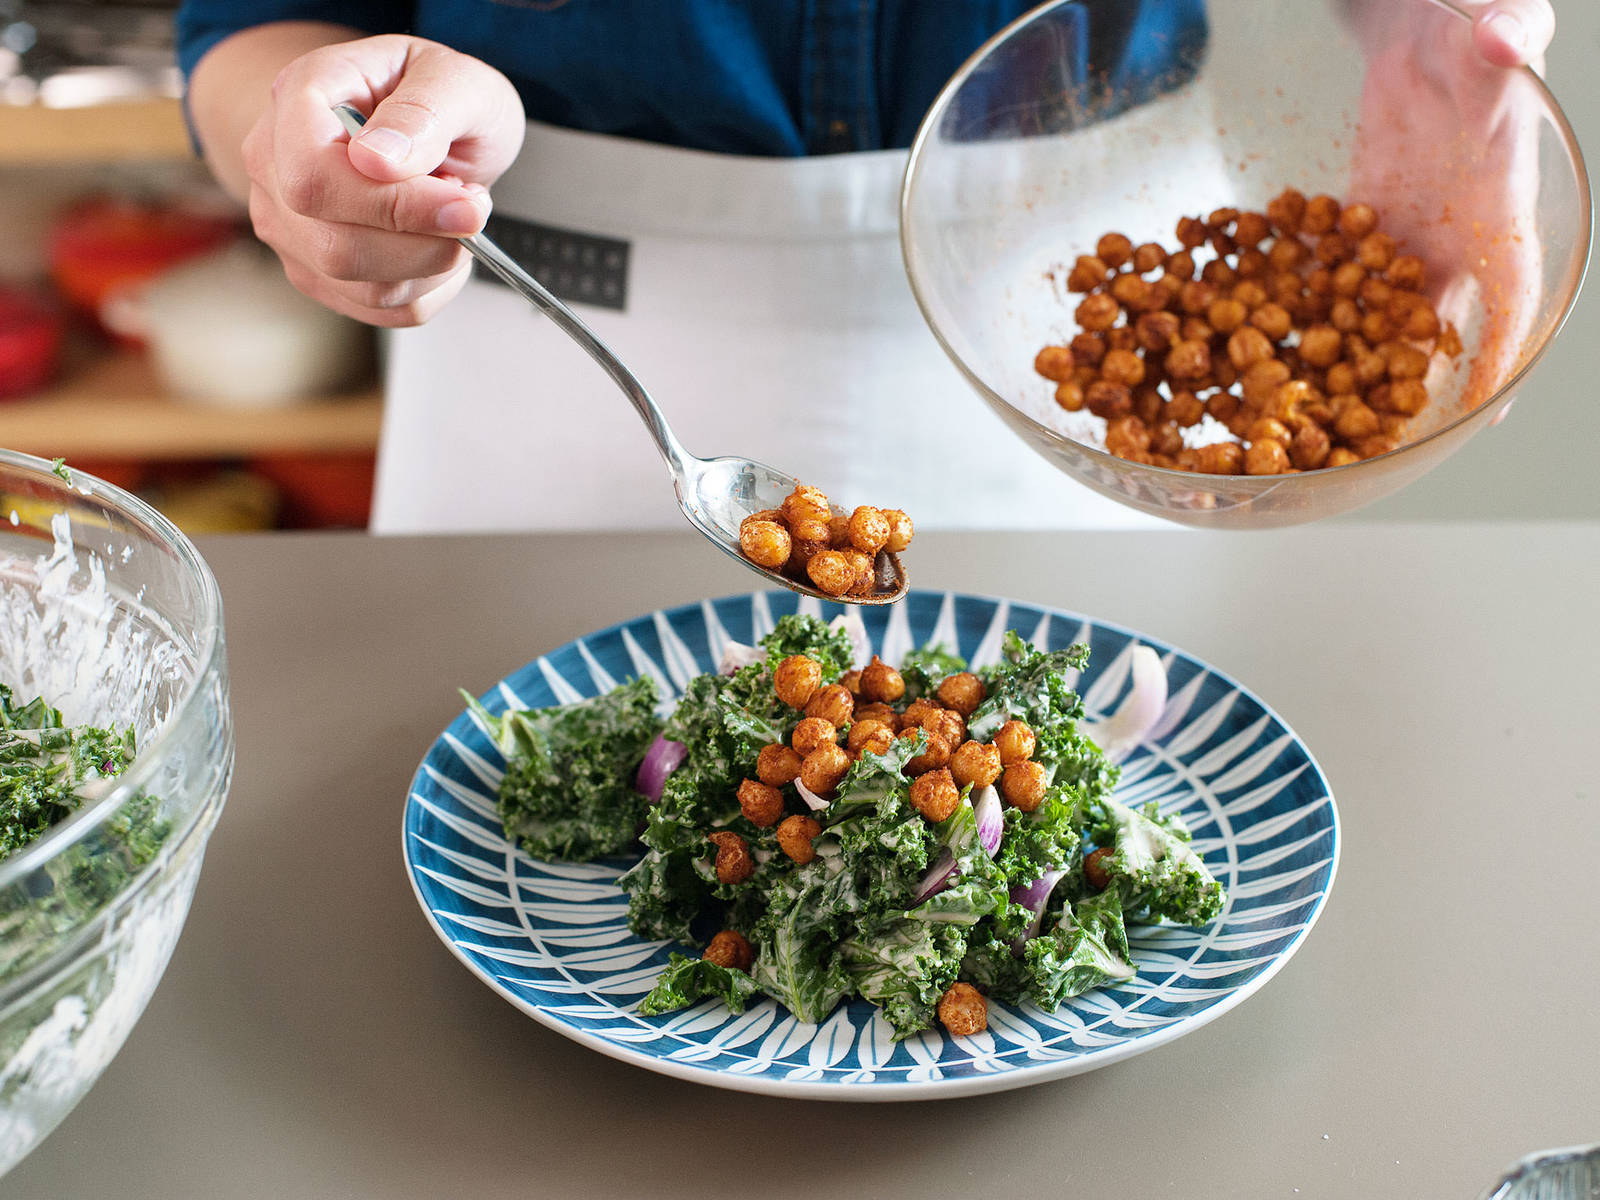 Add dressing to kale and toss to combine. Transfer salad to serving bowls and top with fried chickpeas. Enjoy!